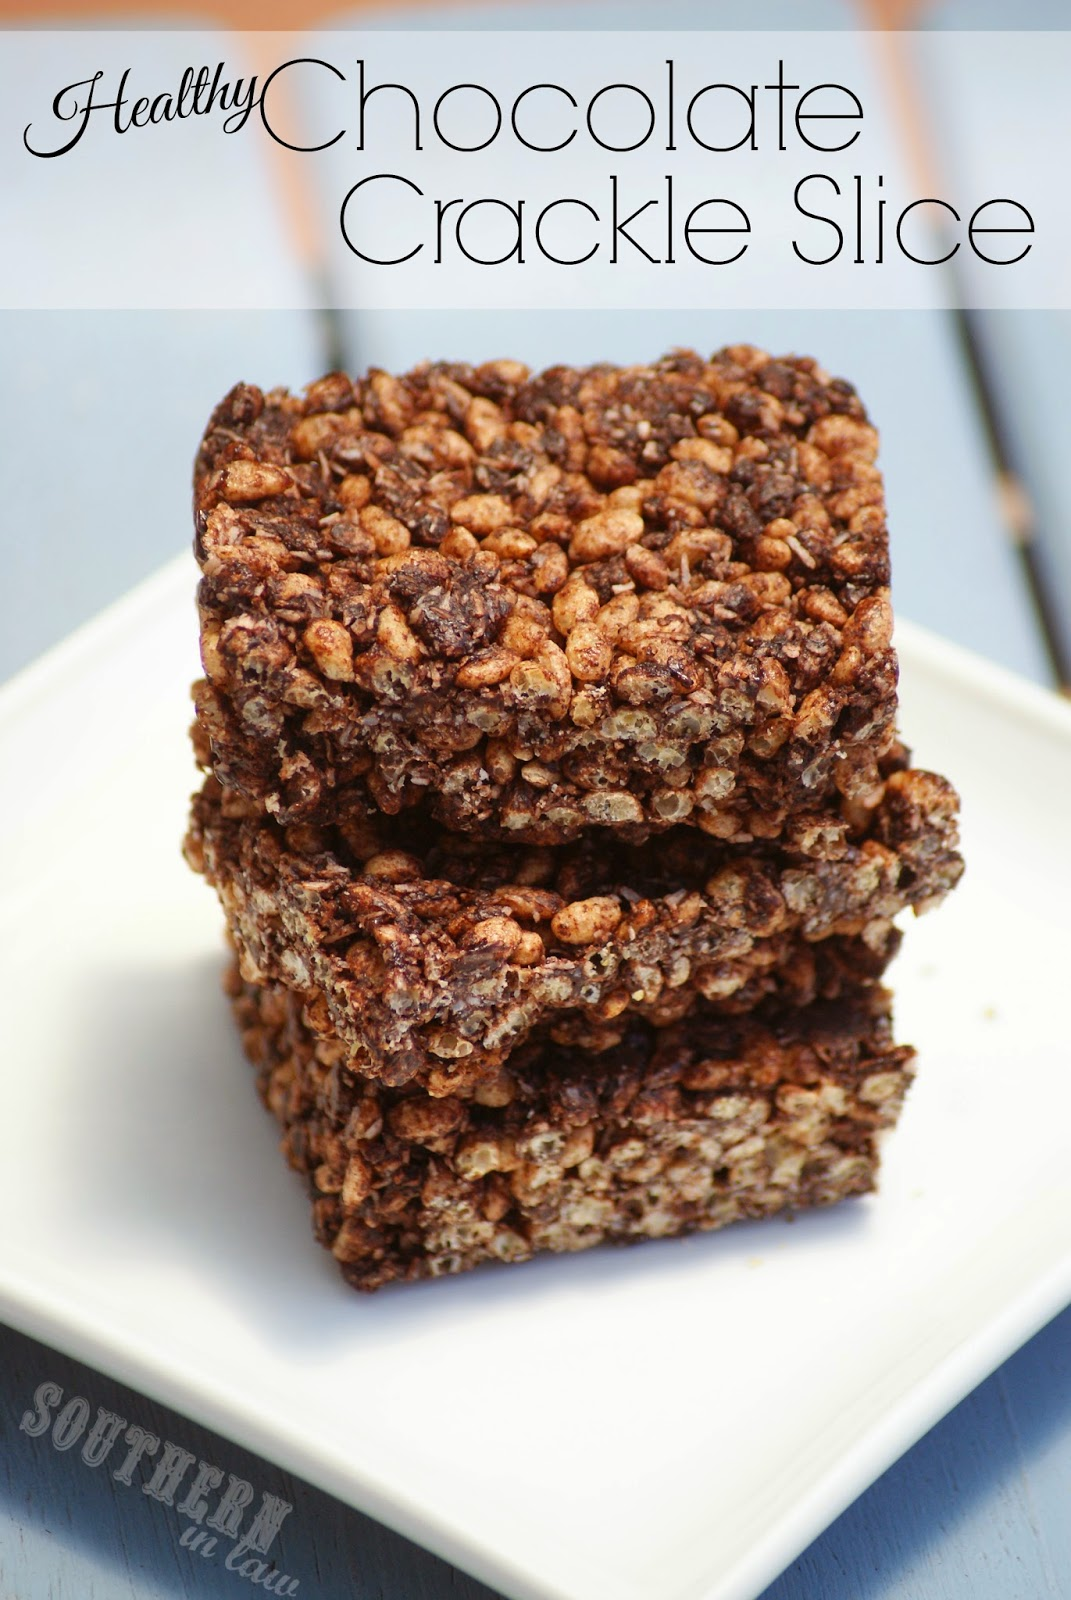 Gluten Free Chocolate Crackle Recipe - Chocolate Coconut Rice Krispy Treats